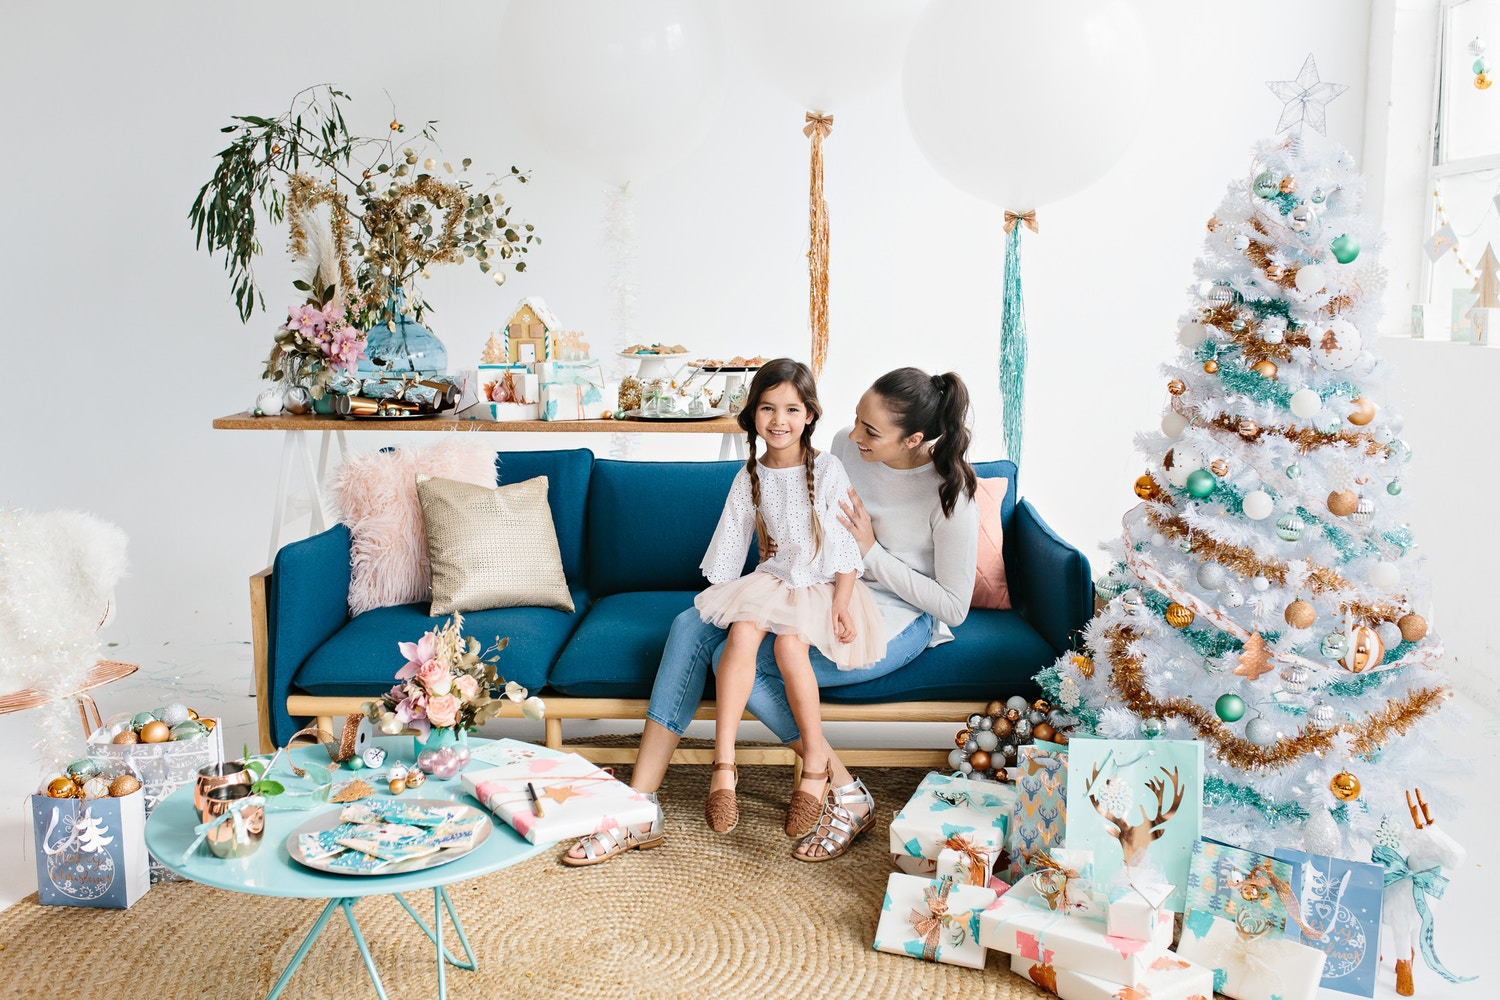 Make It Crafty with Spotlight this Christmas